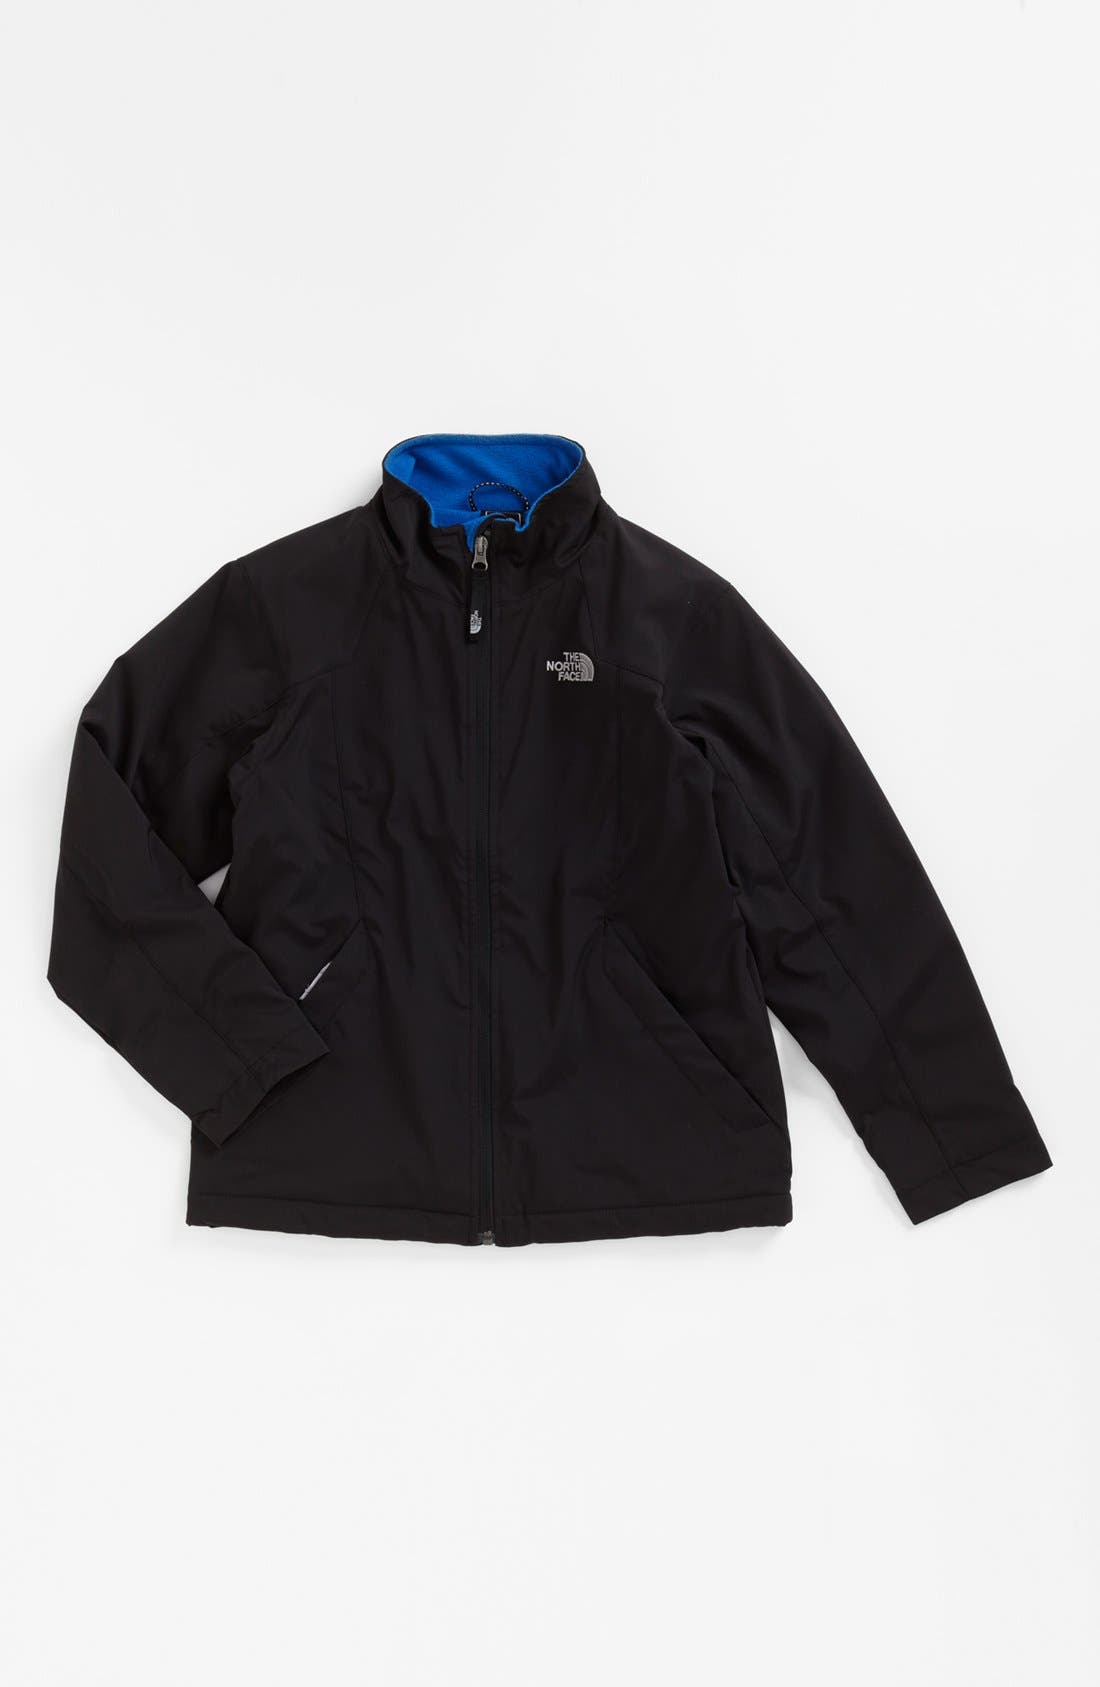 Alternate Image 1 Selected - The North Face 'Long Distance' Soft Shell Jacket (Big Boys)